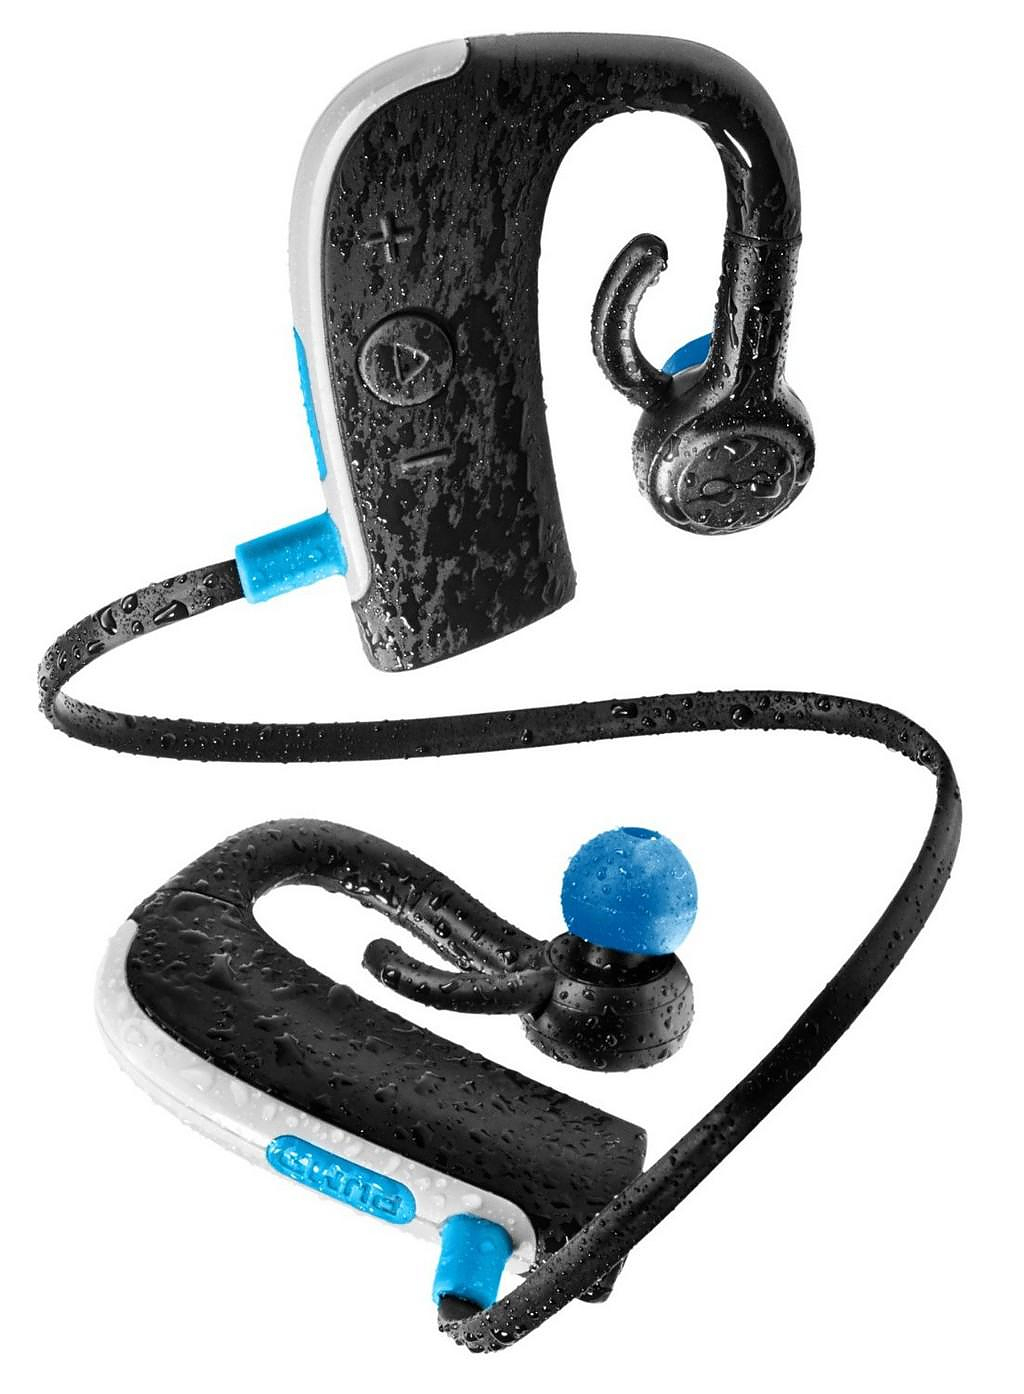 Blueant Pump HD bluetooth wireless sportsbuds (4)